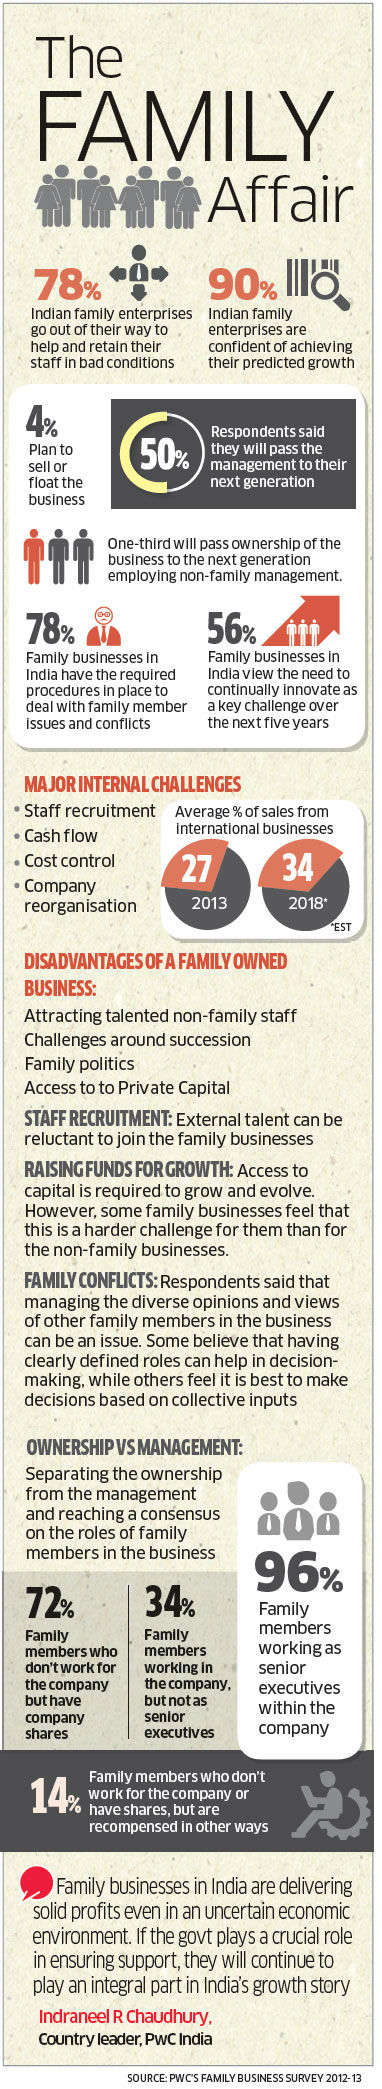 India offers challenges to returnee entrepreneurs like Snapdeal founder Kunal Behl